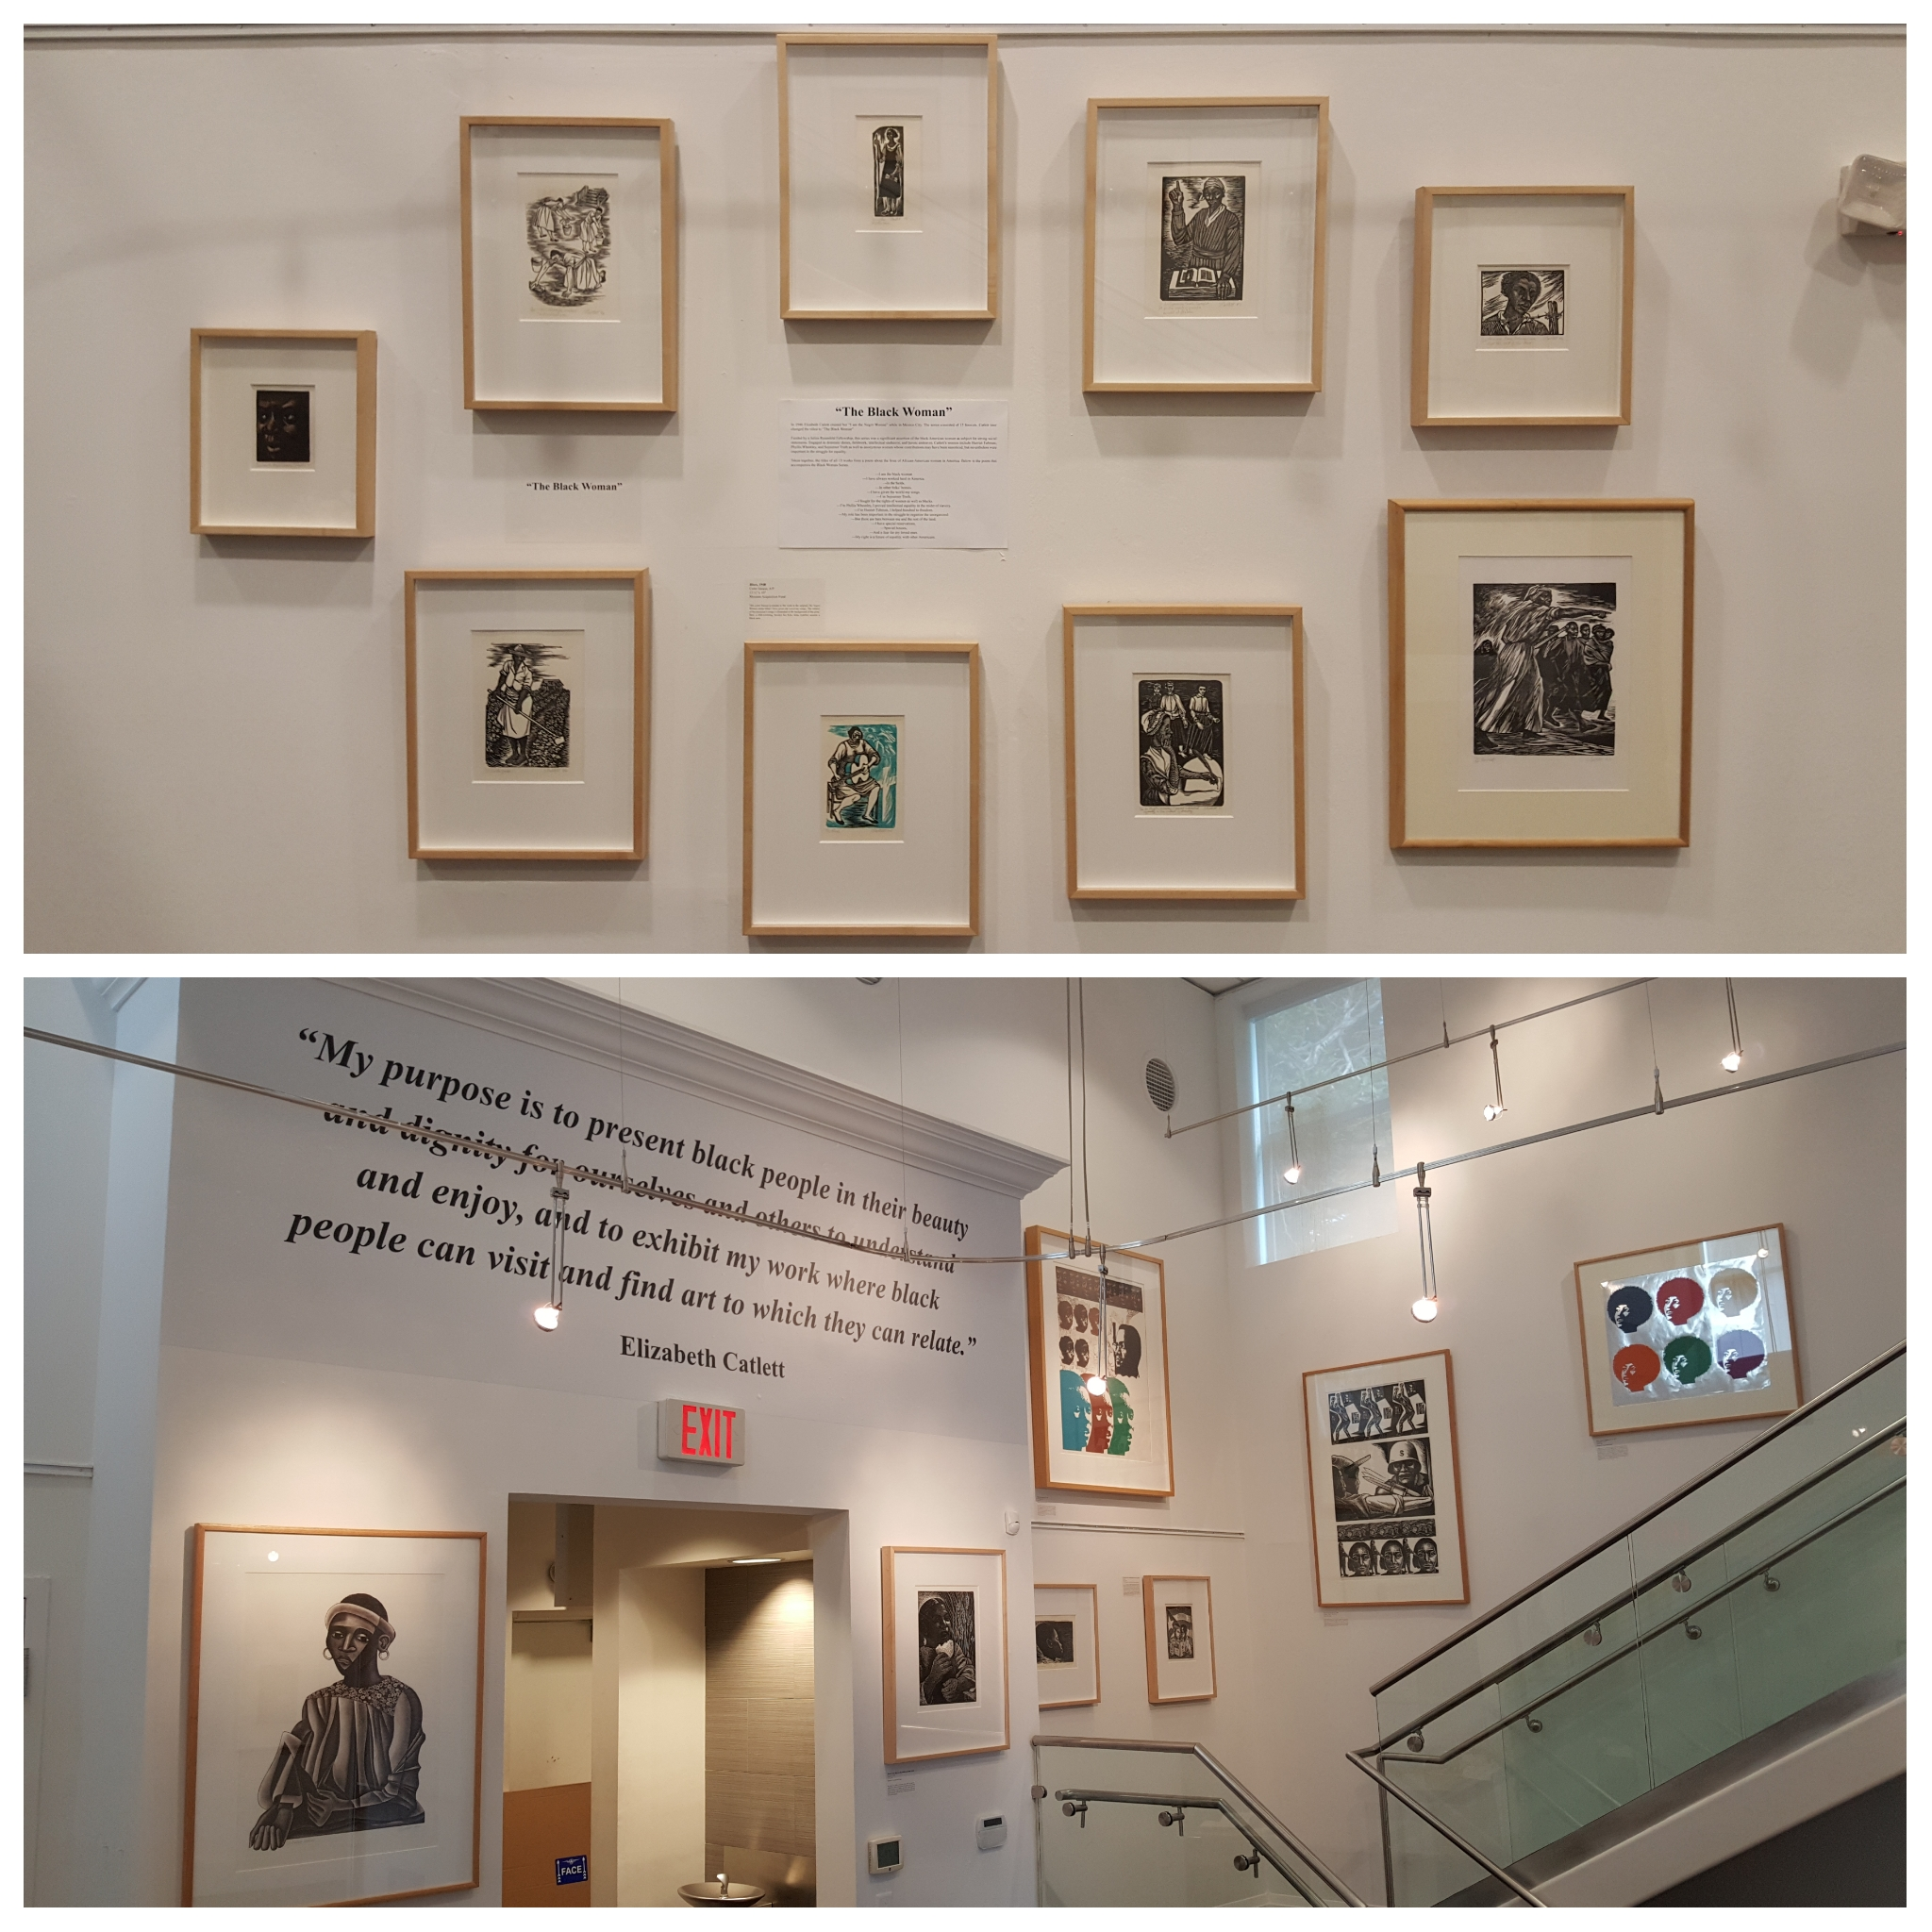 Elizabeth Catlett and the Hampton Arts Tradition  (Art Basel/Miami Art Week 2018)   Elizabeth Catlett and the Black Woman's Contribution to American Democracy  (Black History Month and Woman's Month 2019)